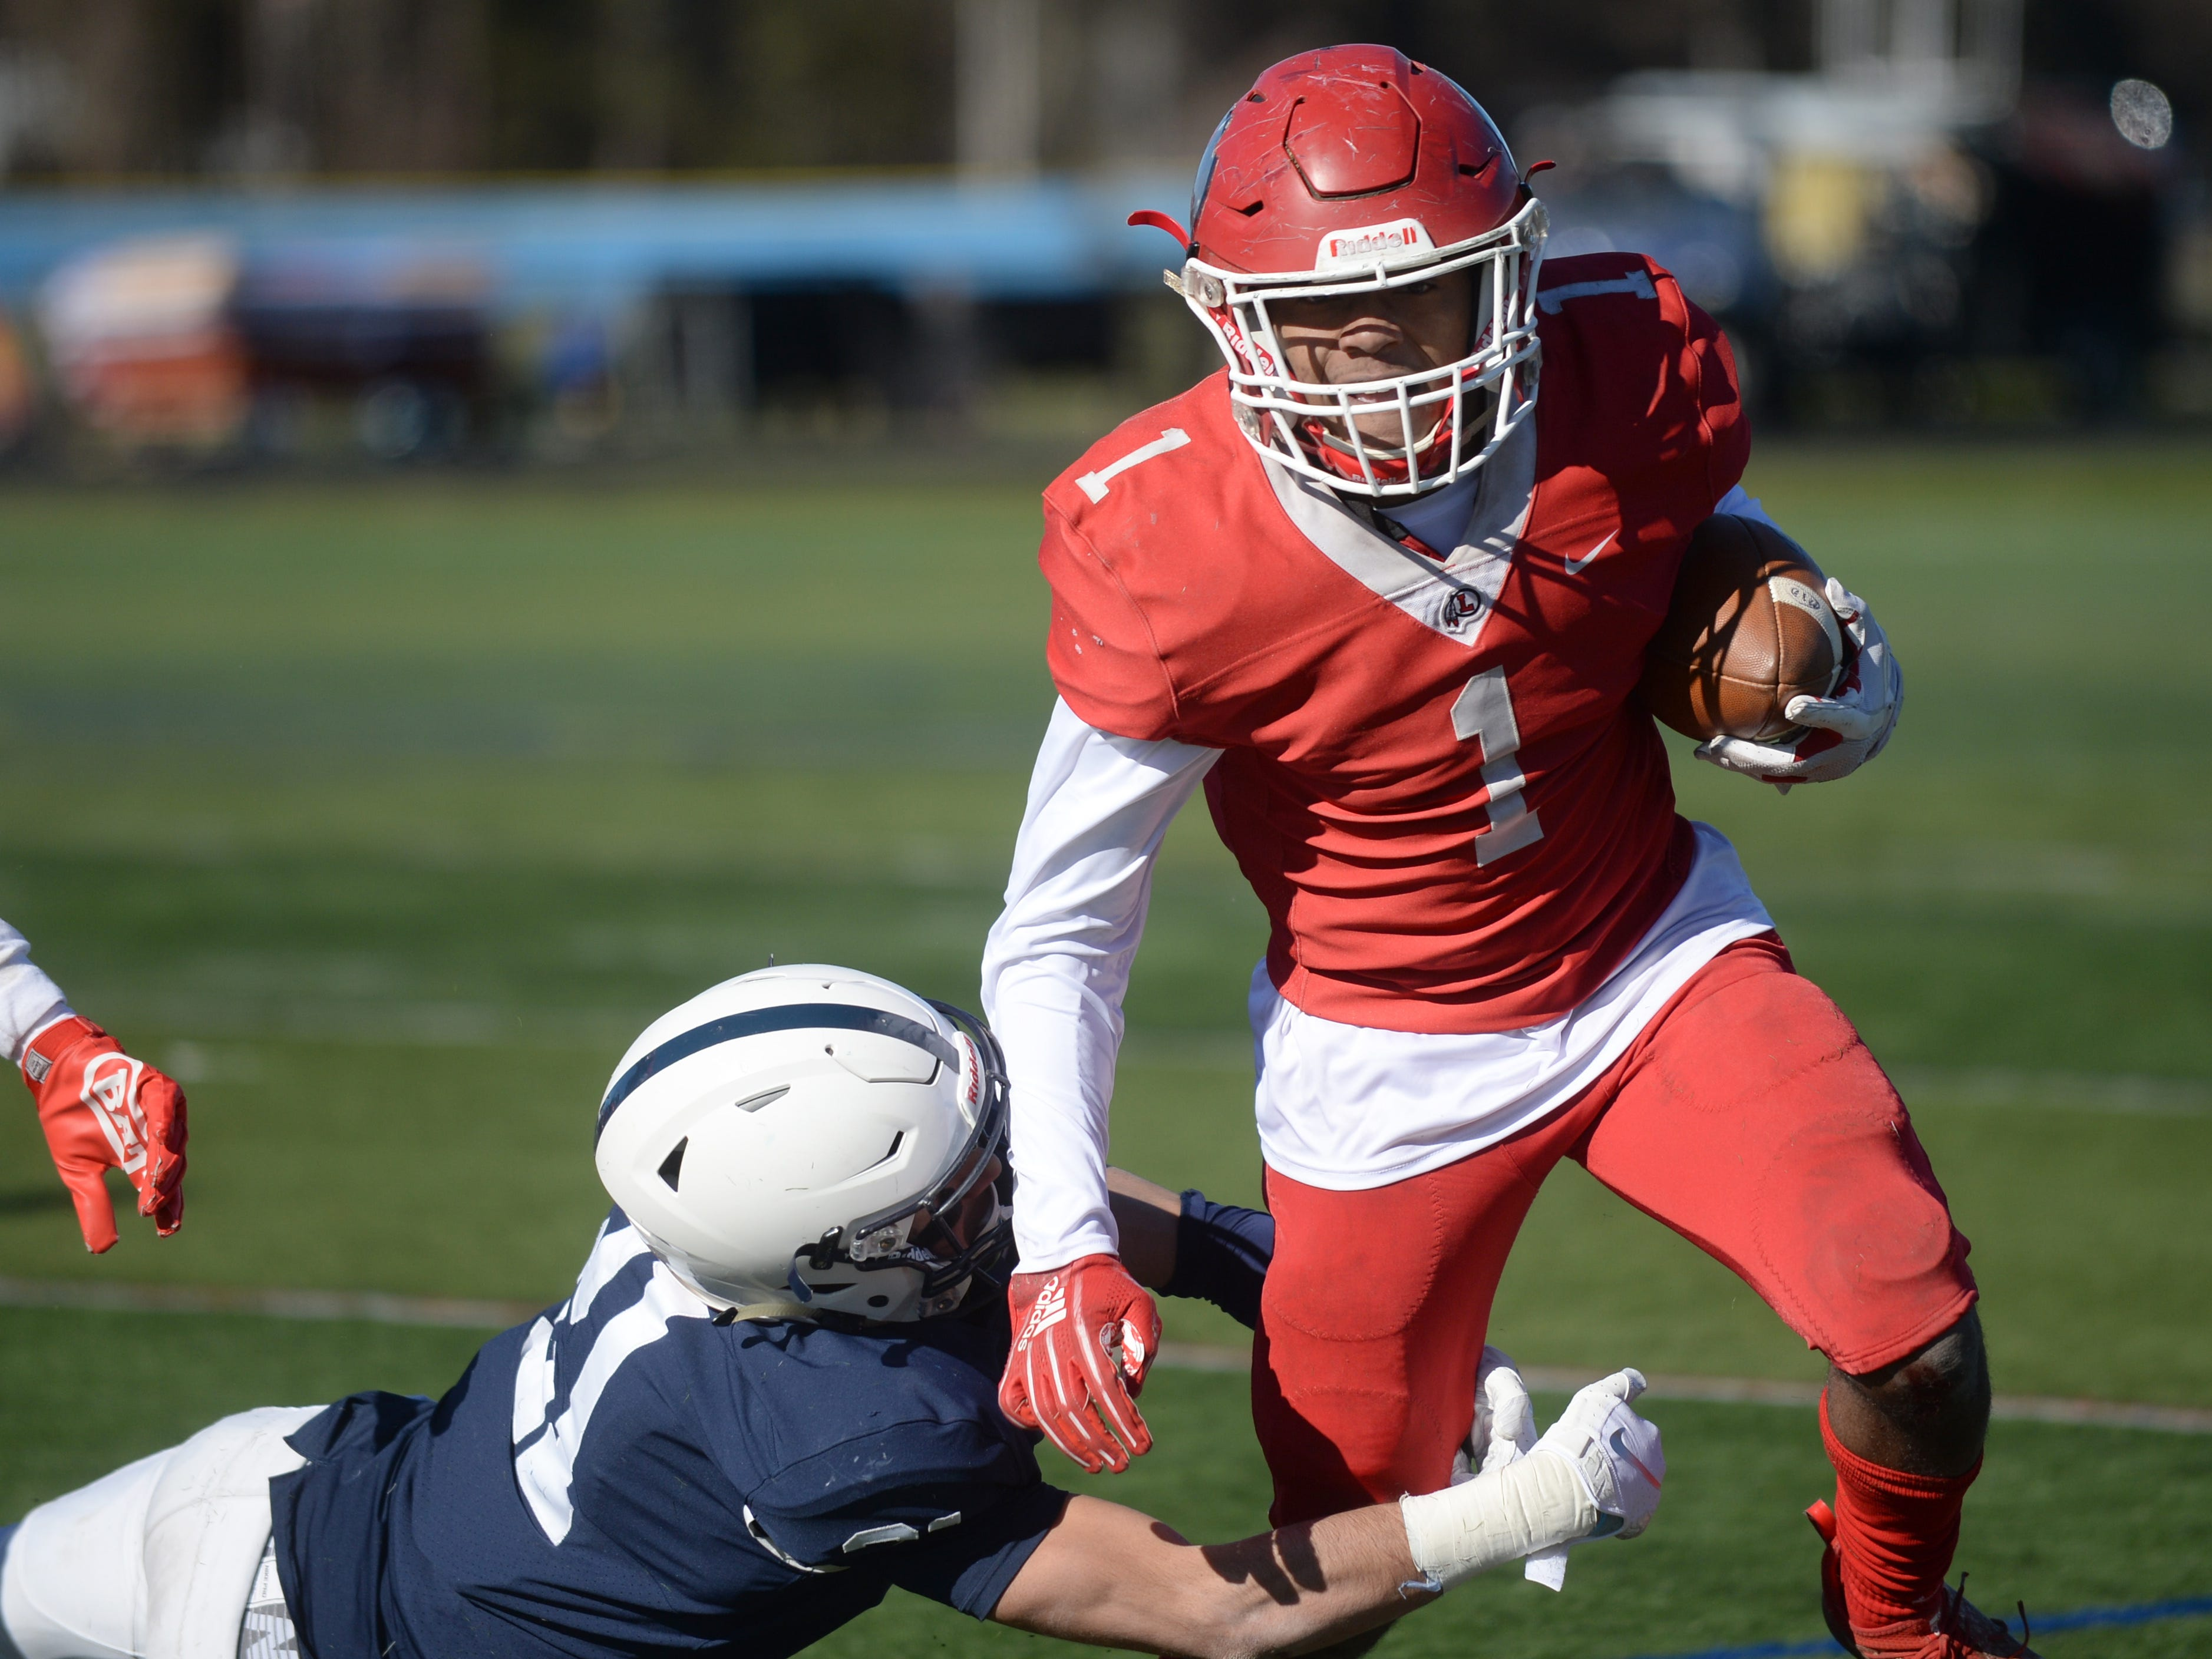 Lenape's Xavier Coleman breaks a tackle by Shawnee's Brian Muller as he carries the ball during the Thanksgiving Day football game at Shawnee High School, Thursday, Nov. 22, 2018.